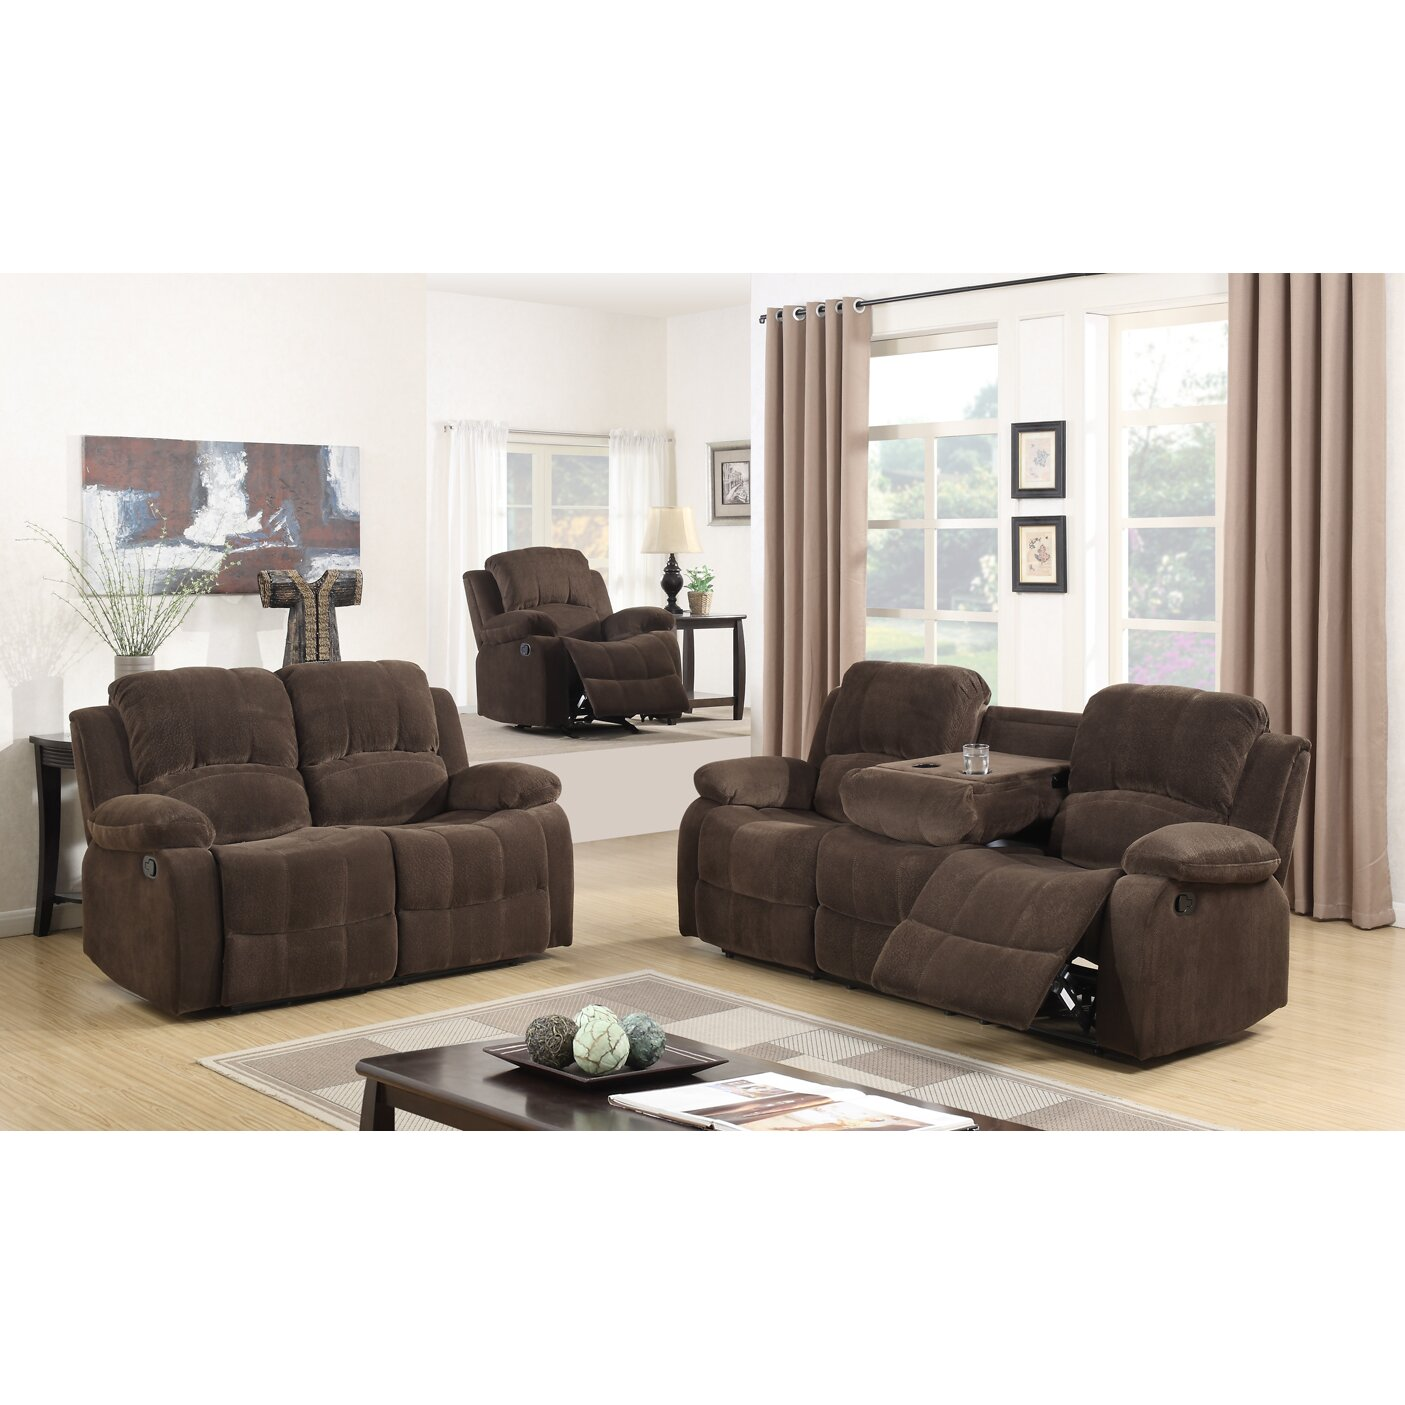 Best quality furniture fabric 3 piece recliner living room for 3 piece living room set